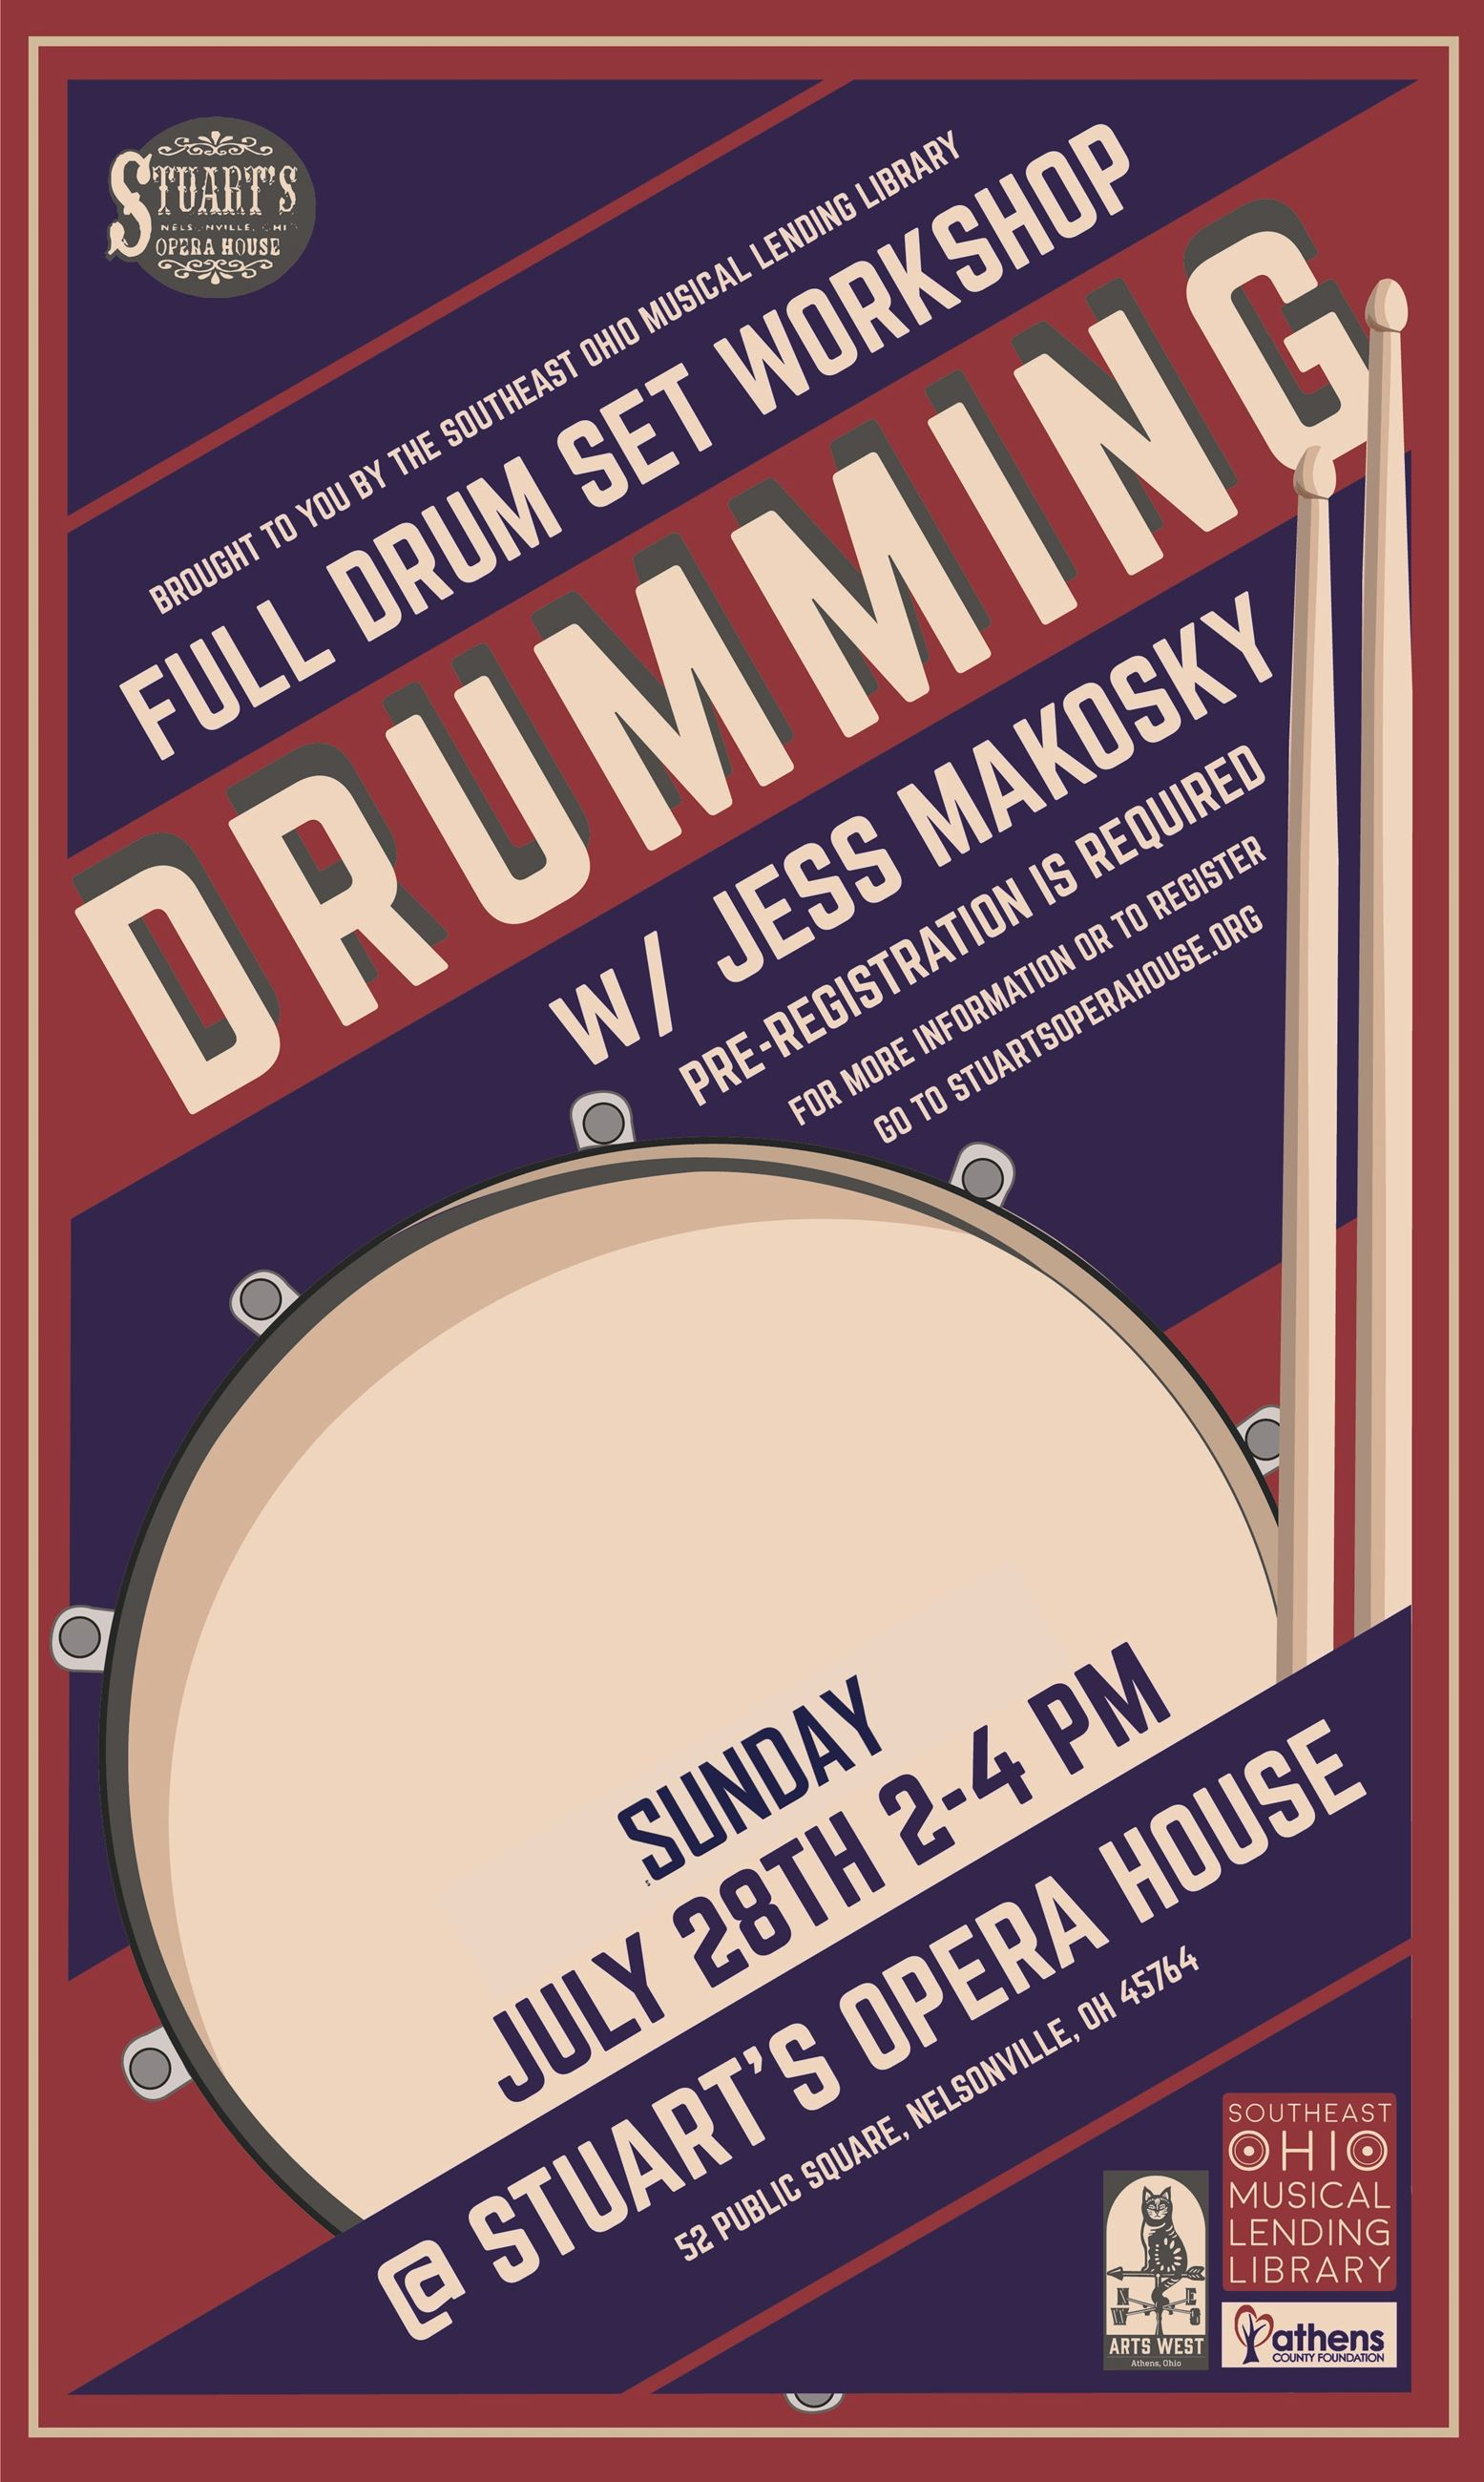 Drumming Workshop Poster 7.2019